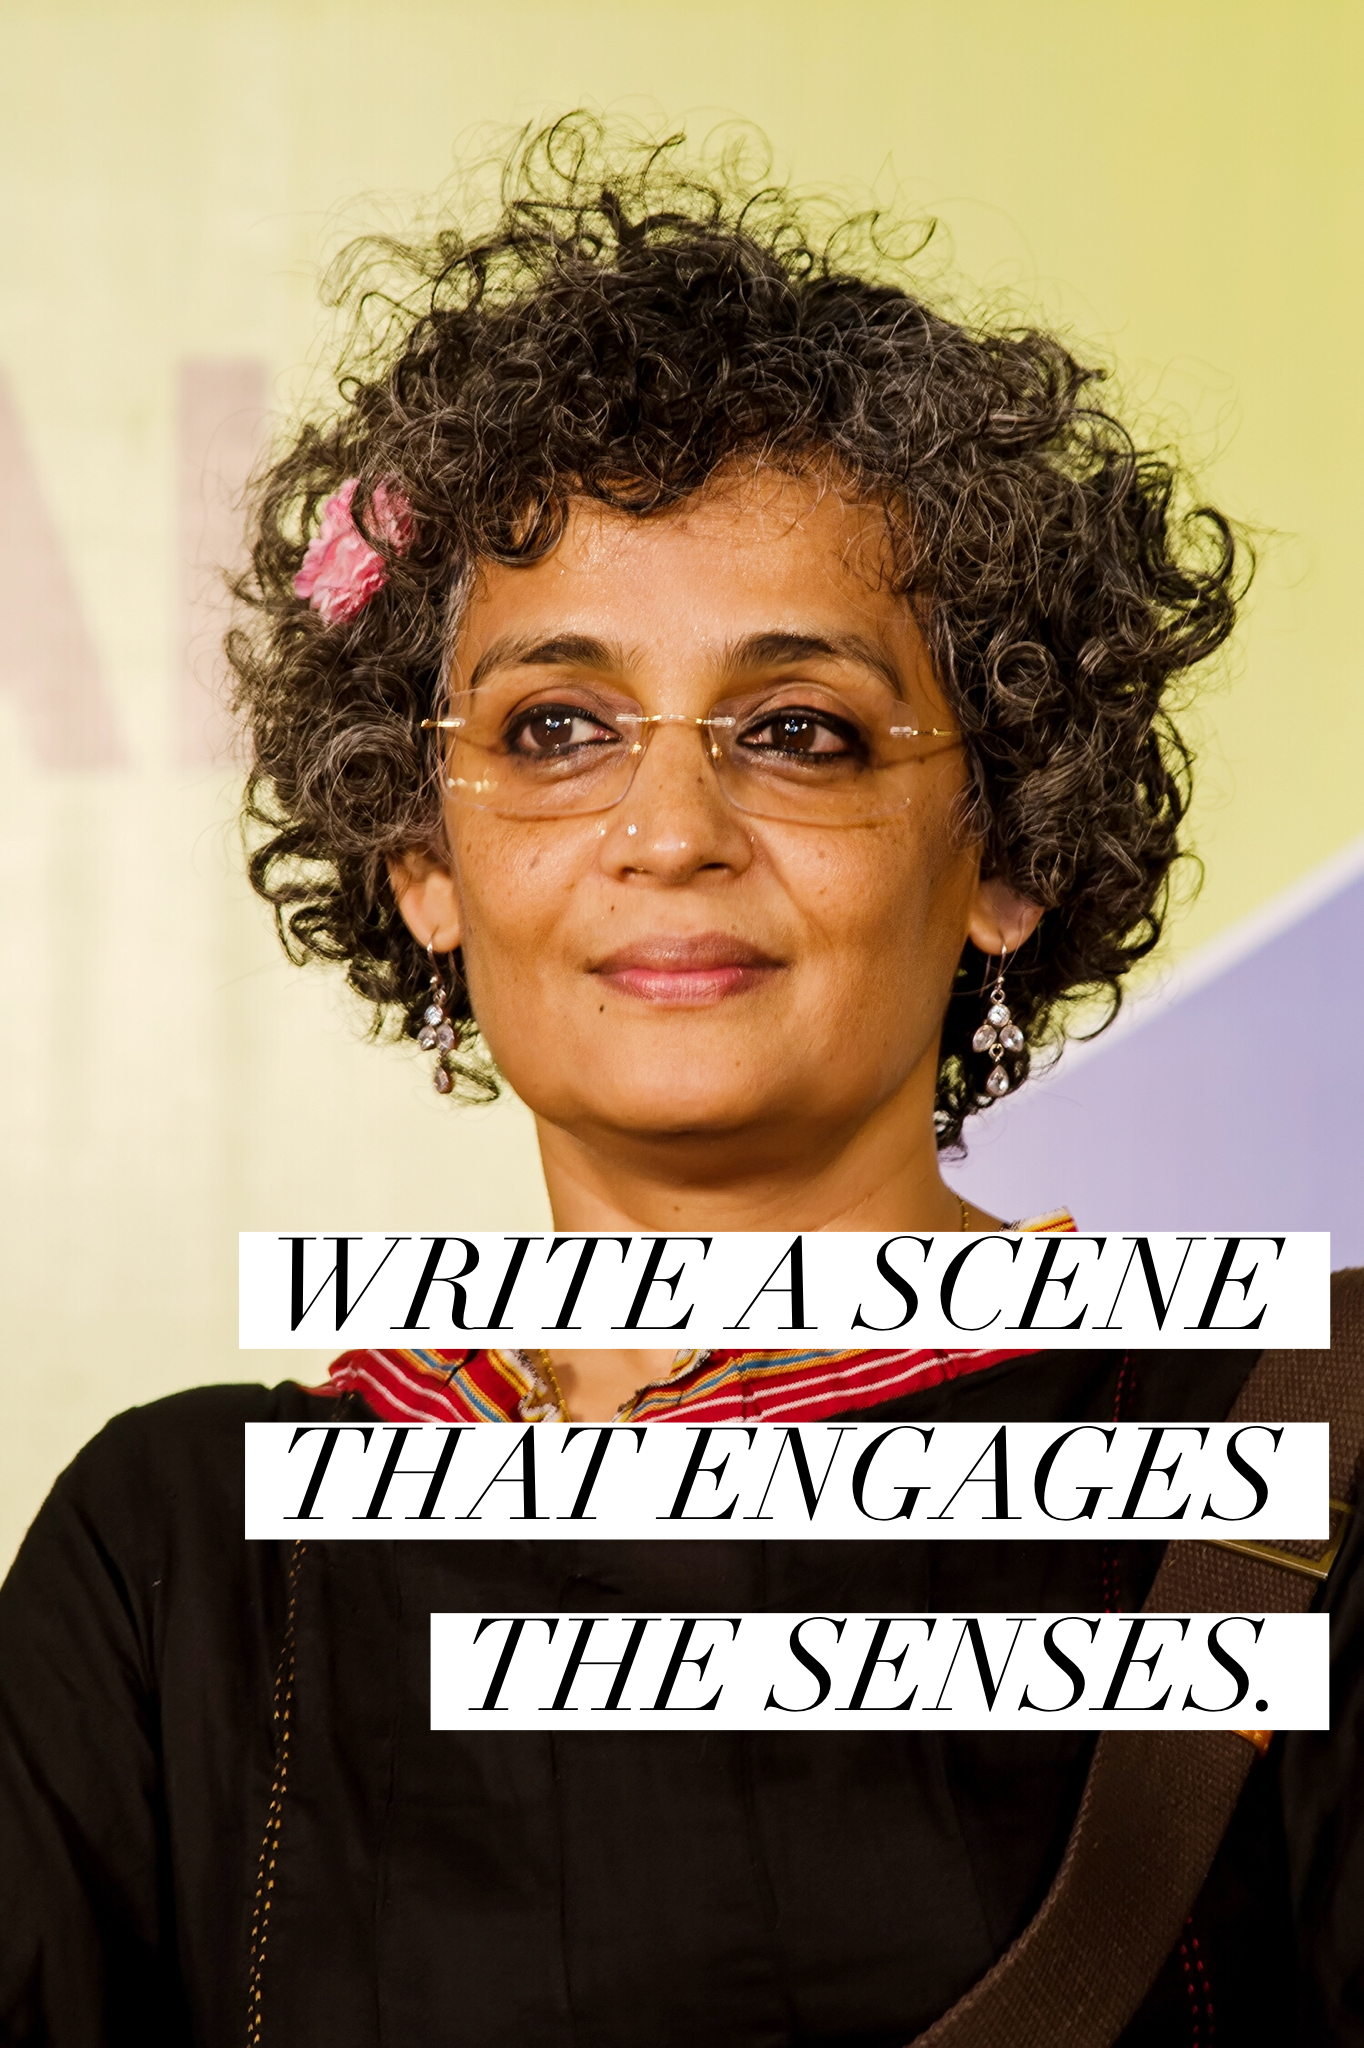 write a scene that engages the senses